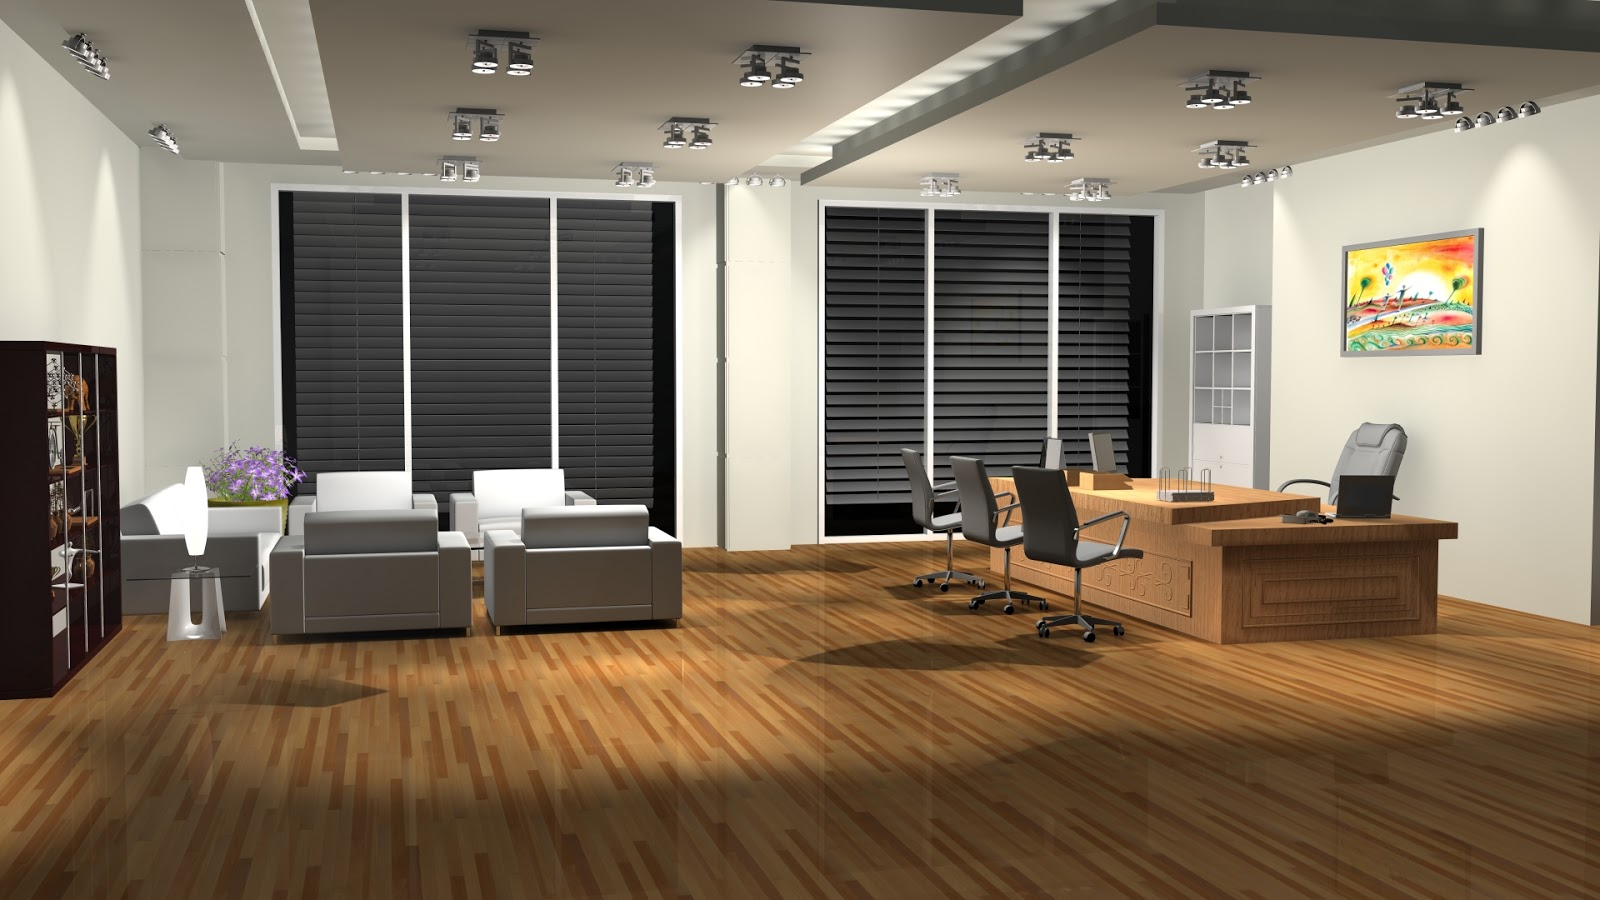 Sajid designs office room 3d interior design 3ds max for Interieur decorator